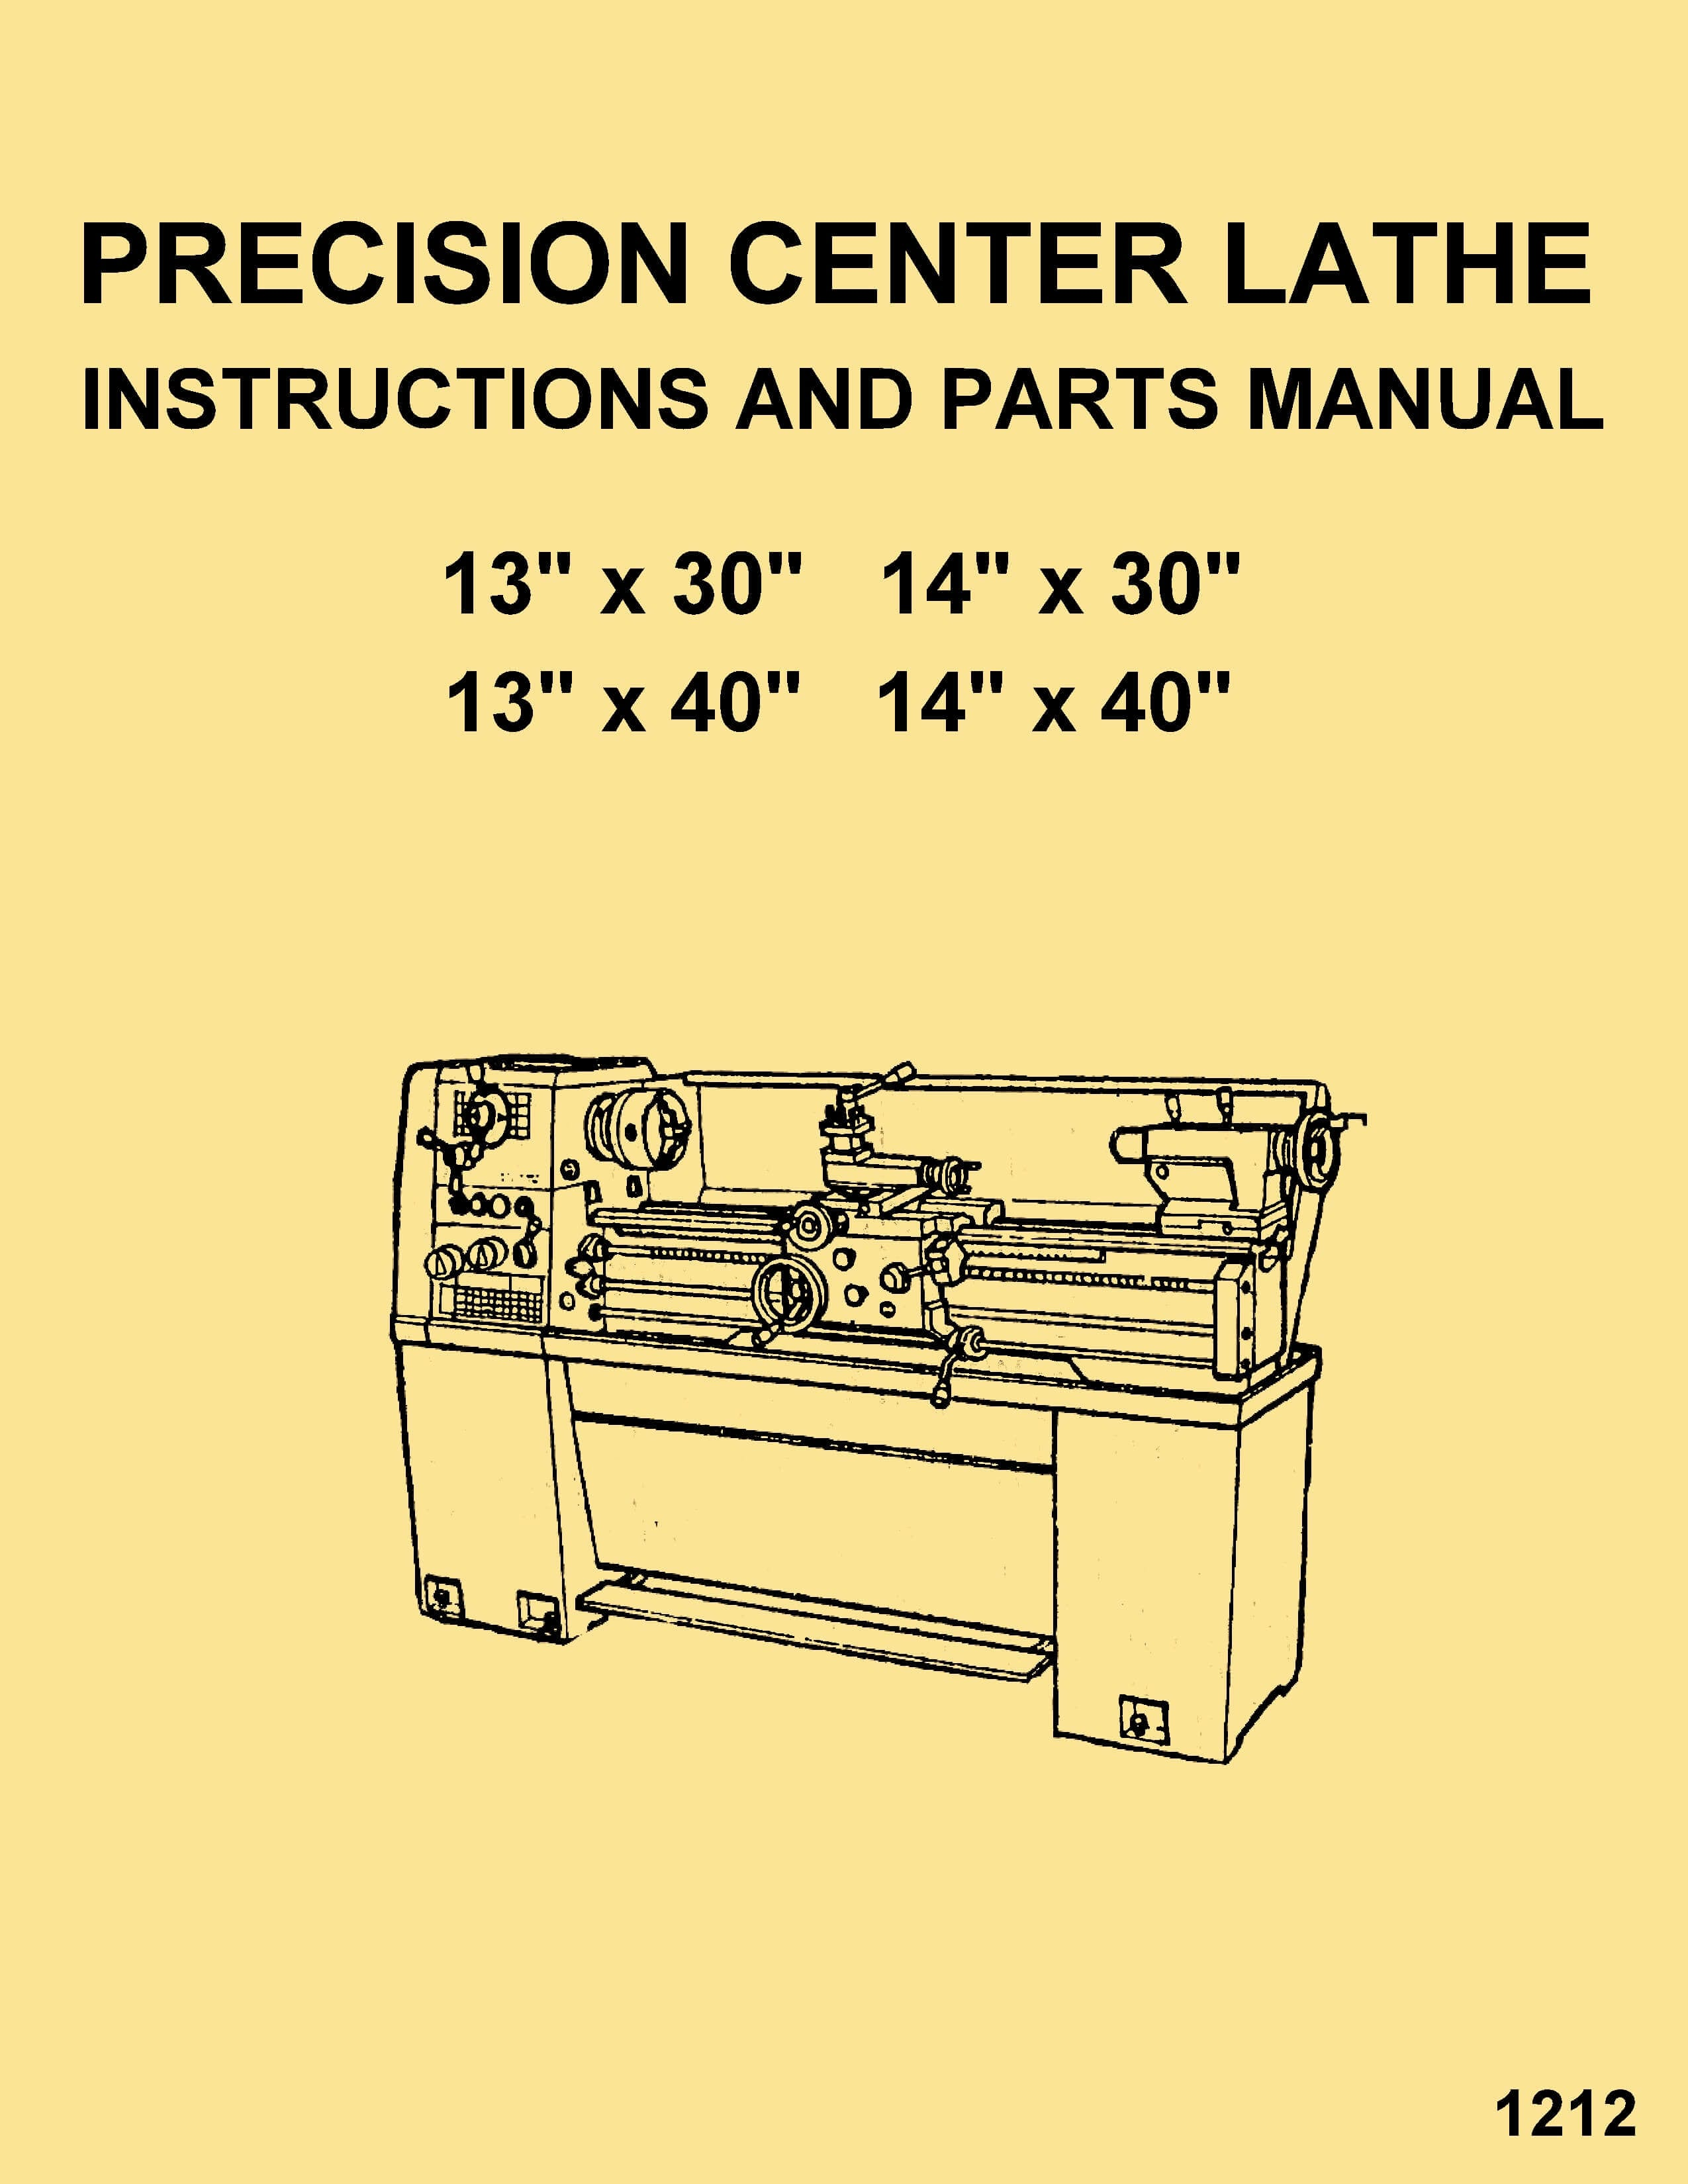 Enco,Warco,JET,Asian 1330 1340 1430 1440 Metal Lathe Instructions  Operator's & Parts Manual | Ozark Tool Manuals & Books